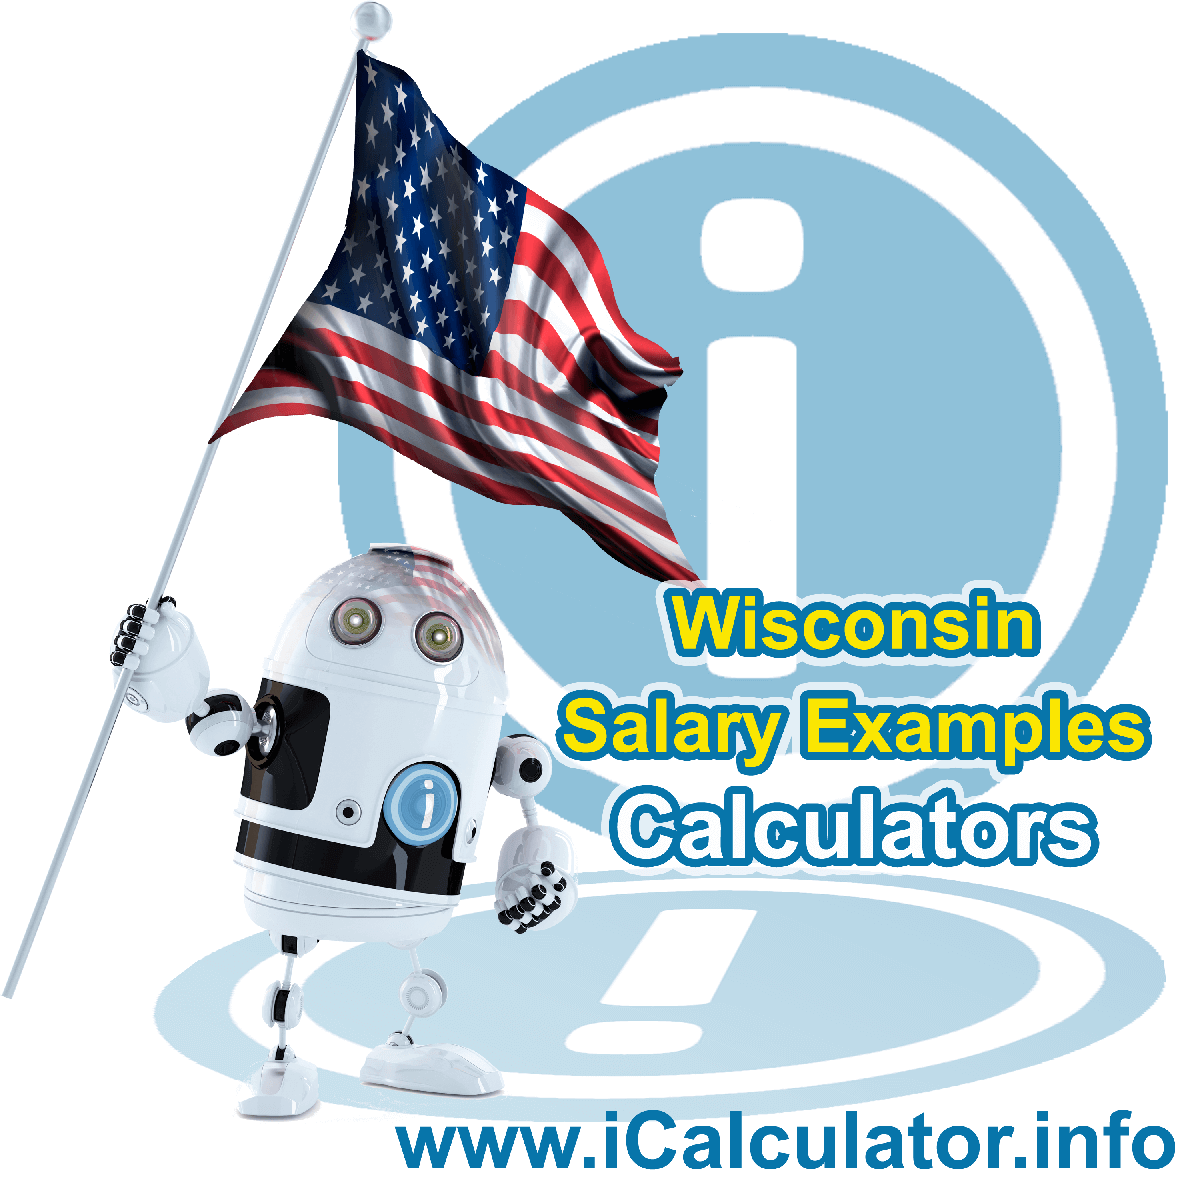 Wisconsin Salary Example for $180.00 in 2020 | iCalculator | $180.00 salary example for employee and employer paying Wisconsin State tincome taxes. Detailed salary after tax calculation including Wisconsin State Tax, Federal State Tax, Medicare Deductions, Social Security, Capital Gains and other income tax and salary deductions complete with supporting Wisconsin state tax tables